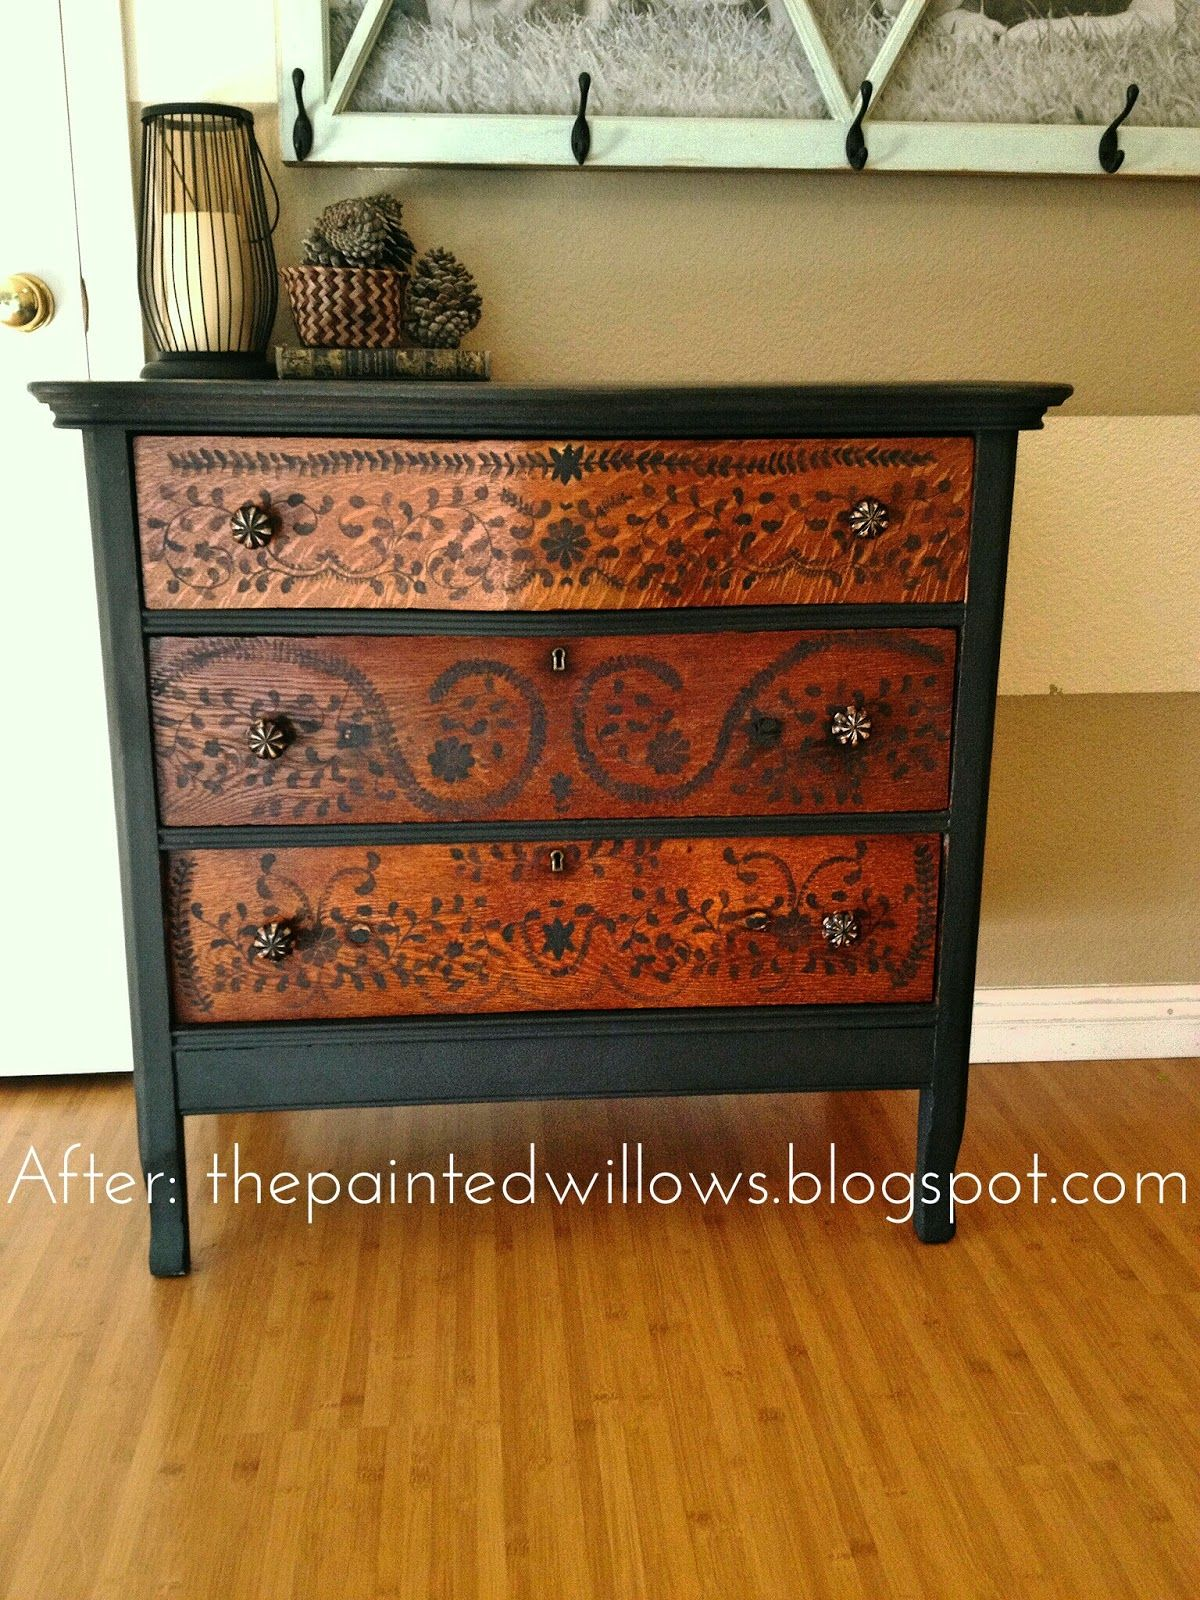 Charmant Furniture Gallery: Tons Of Before And After DIY Furniture Redo Ideas  Including This Miss Mustard Seed Inspired Antique Dresser Painted Black